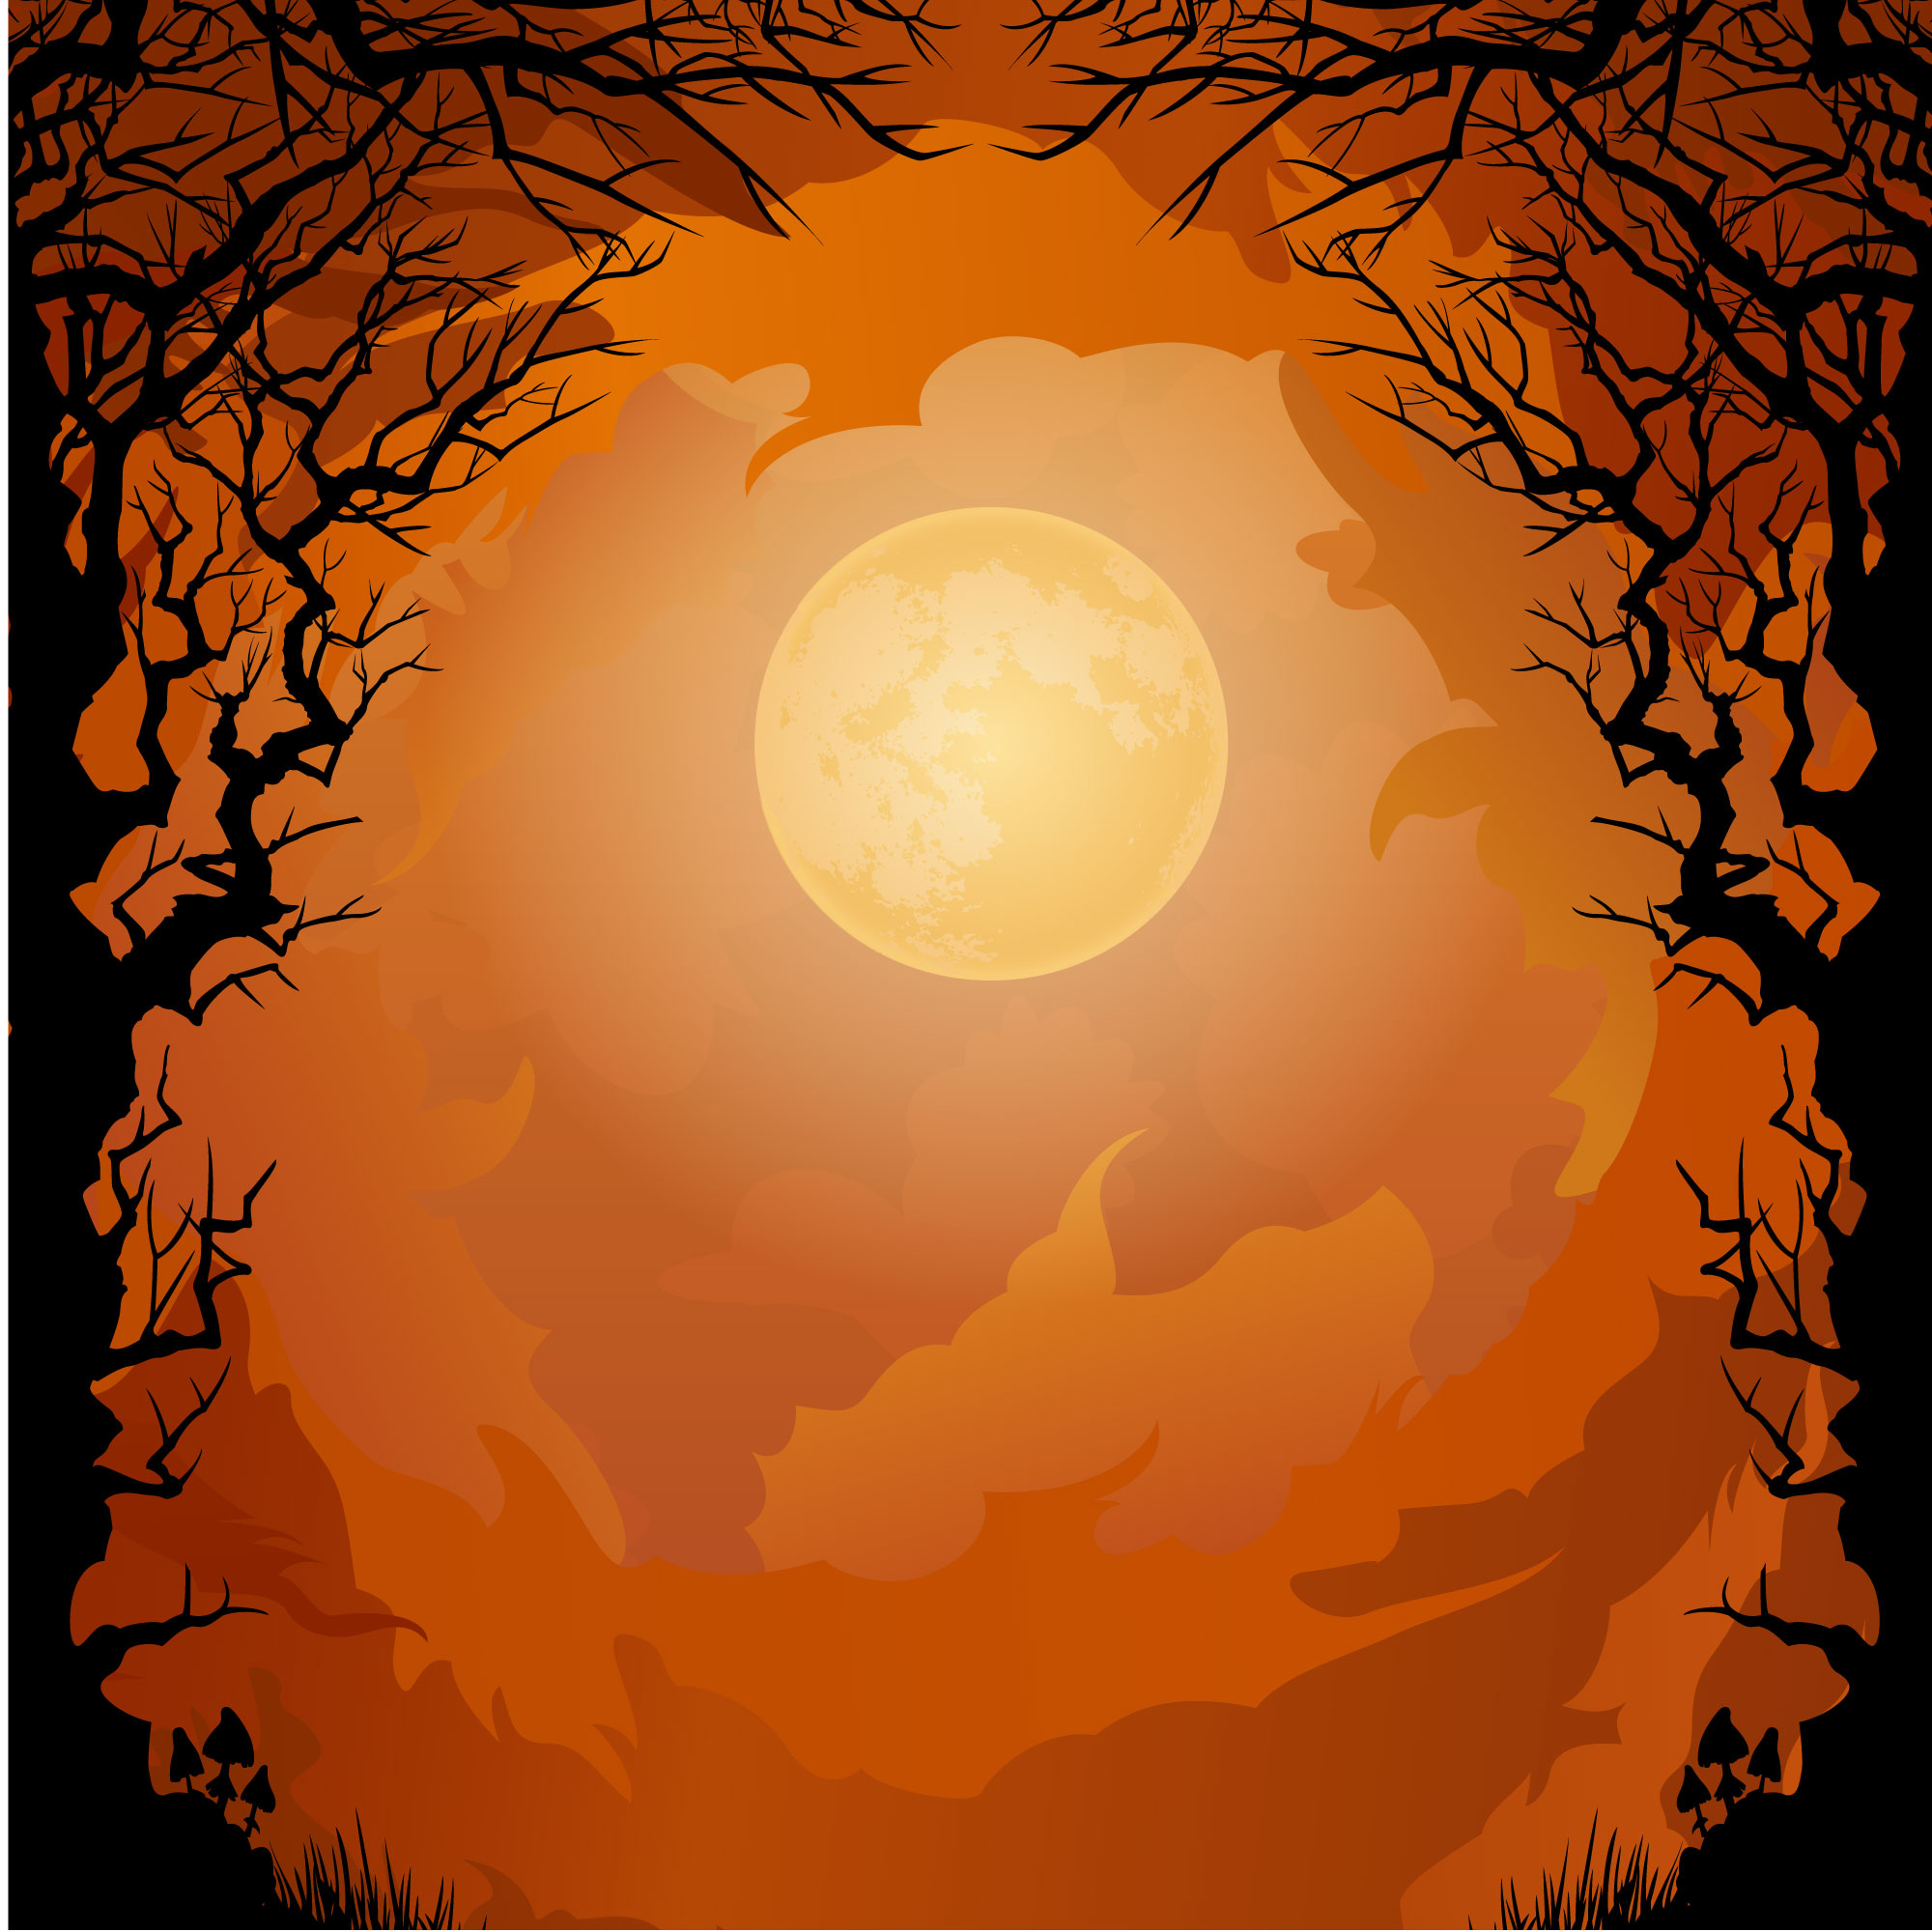 Moonlight sfondo di Halloween